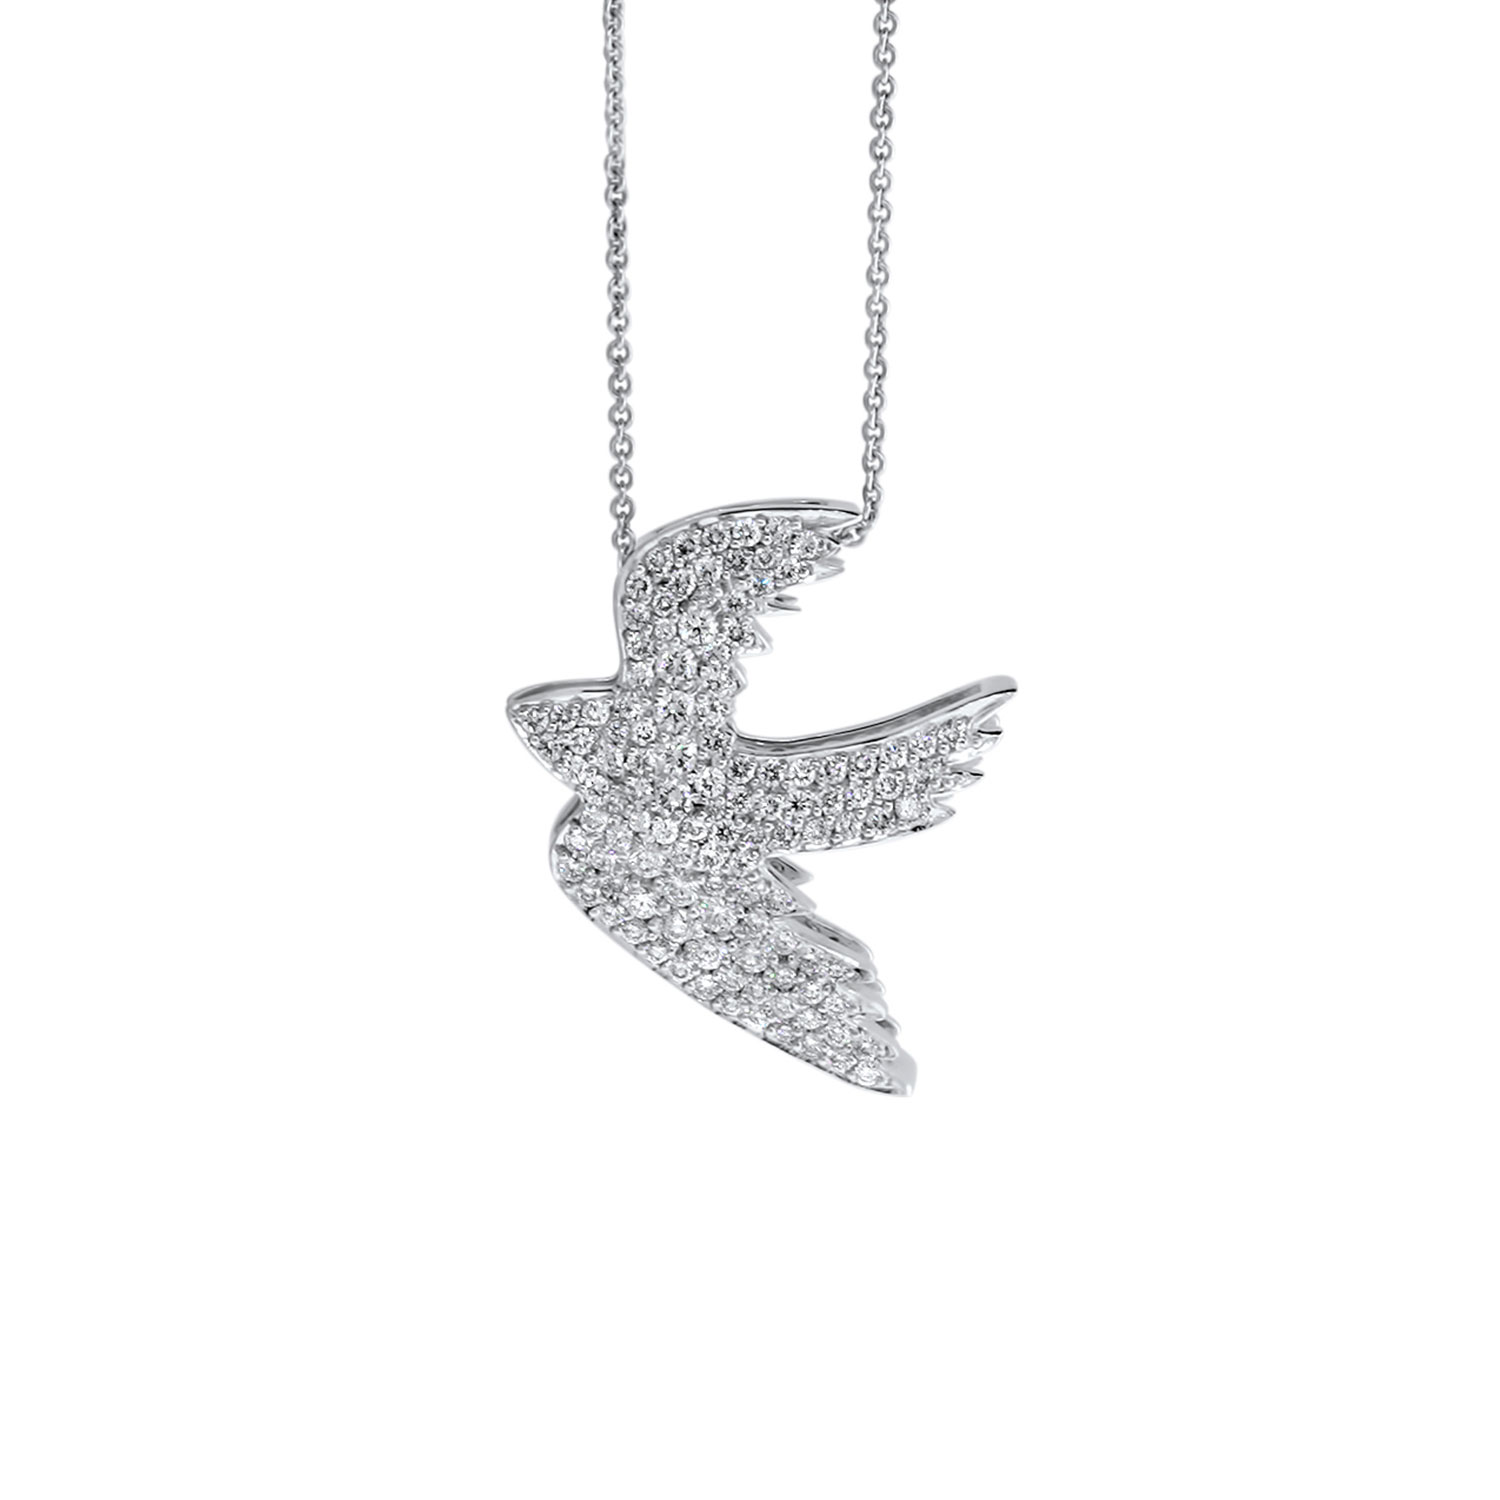 sterling necklaces peace loading en dove necklace enomis silver pendant zoom